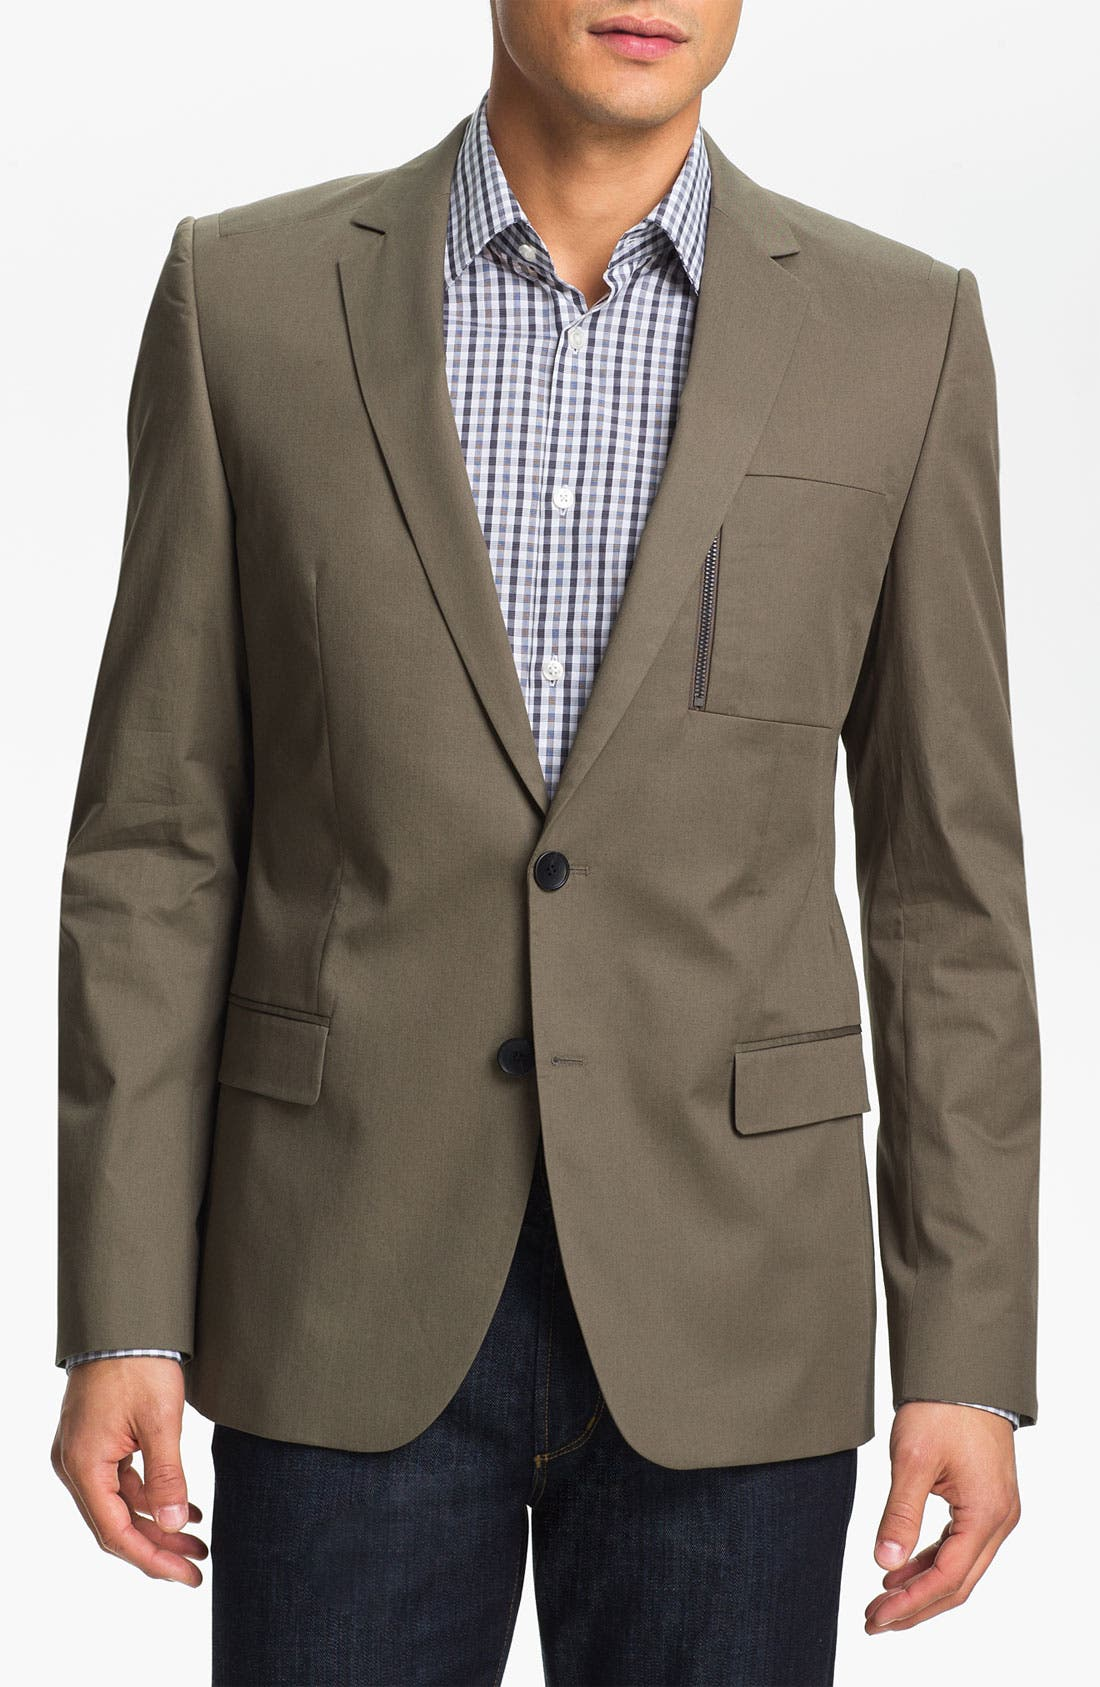 Alternate Image 1 Selected - HUGO 'Astus' Extra Trim Fit Sportcoat (Online Only)